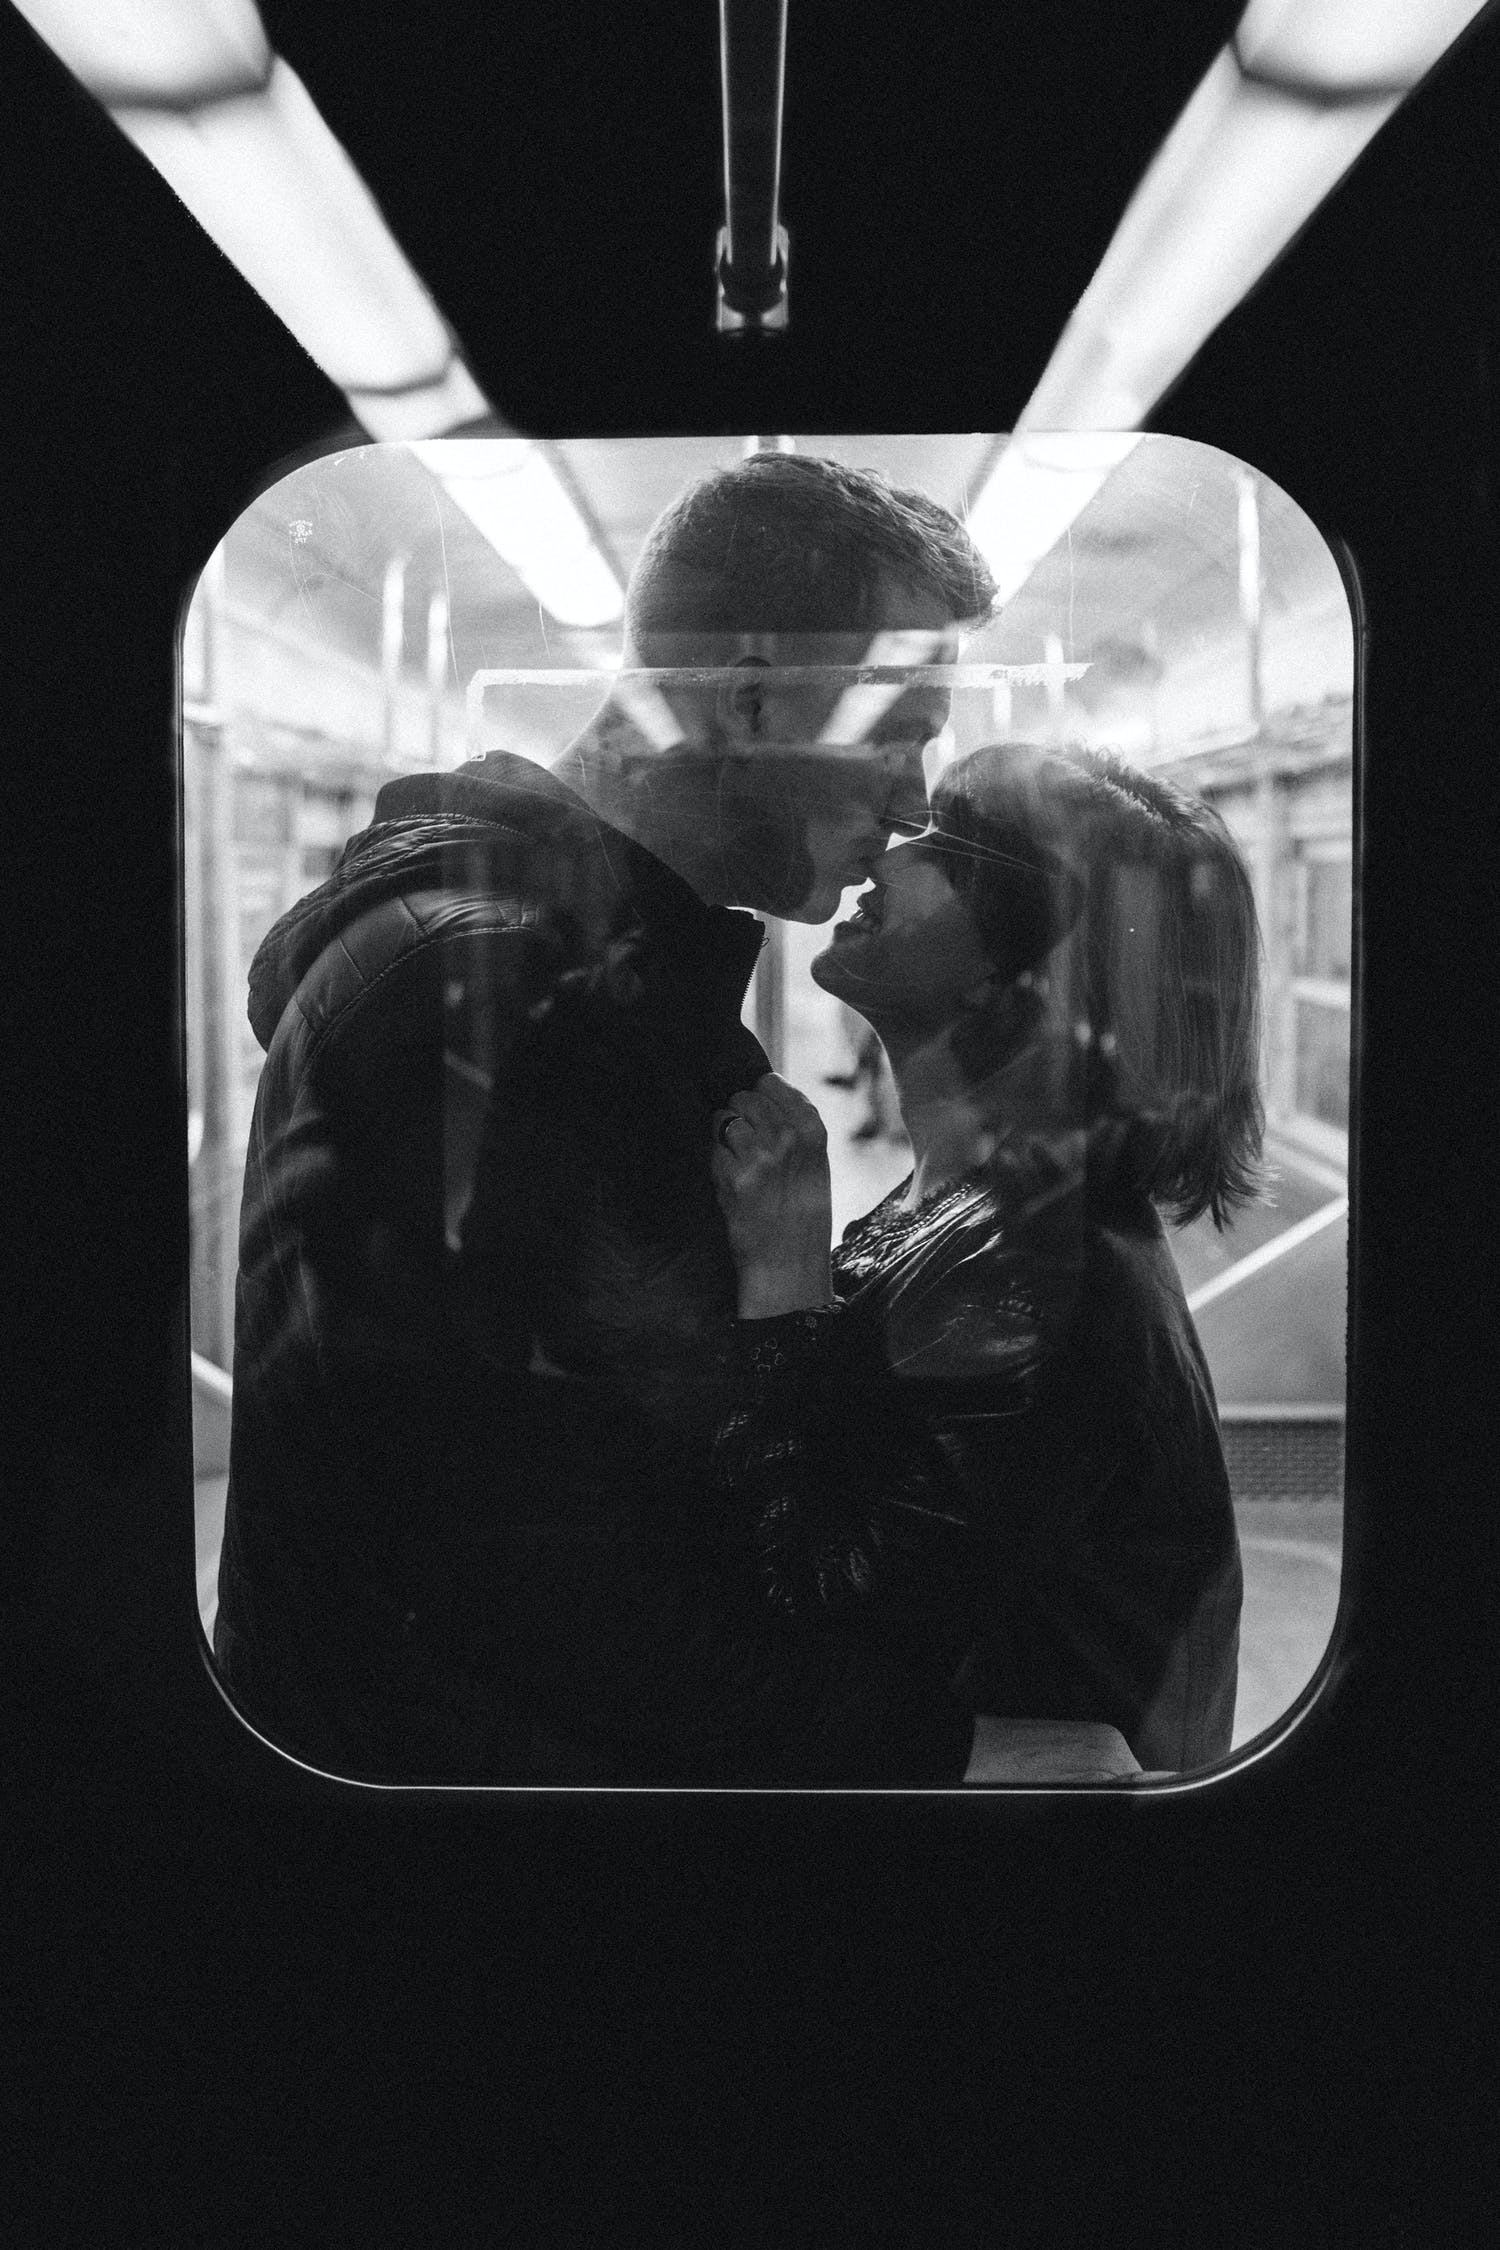 Grayscale Photo of Man Kissing Woman's Nose While Standing Inside a Train